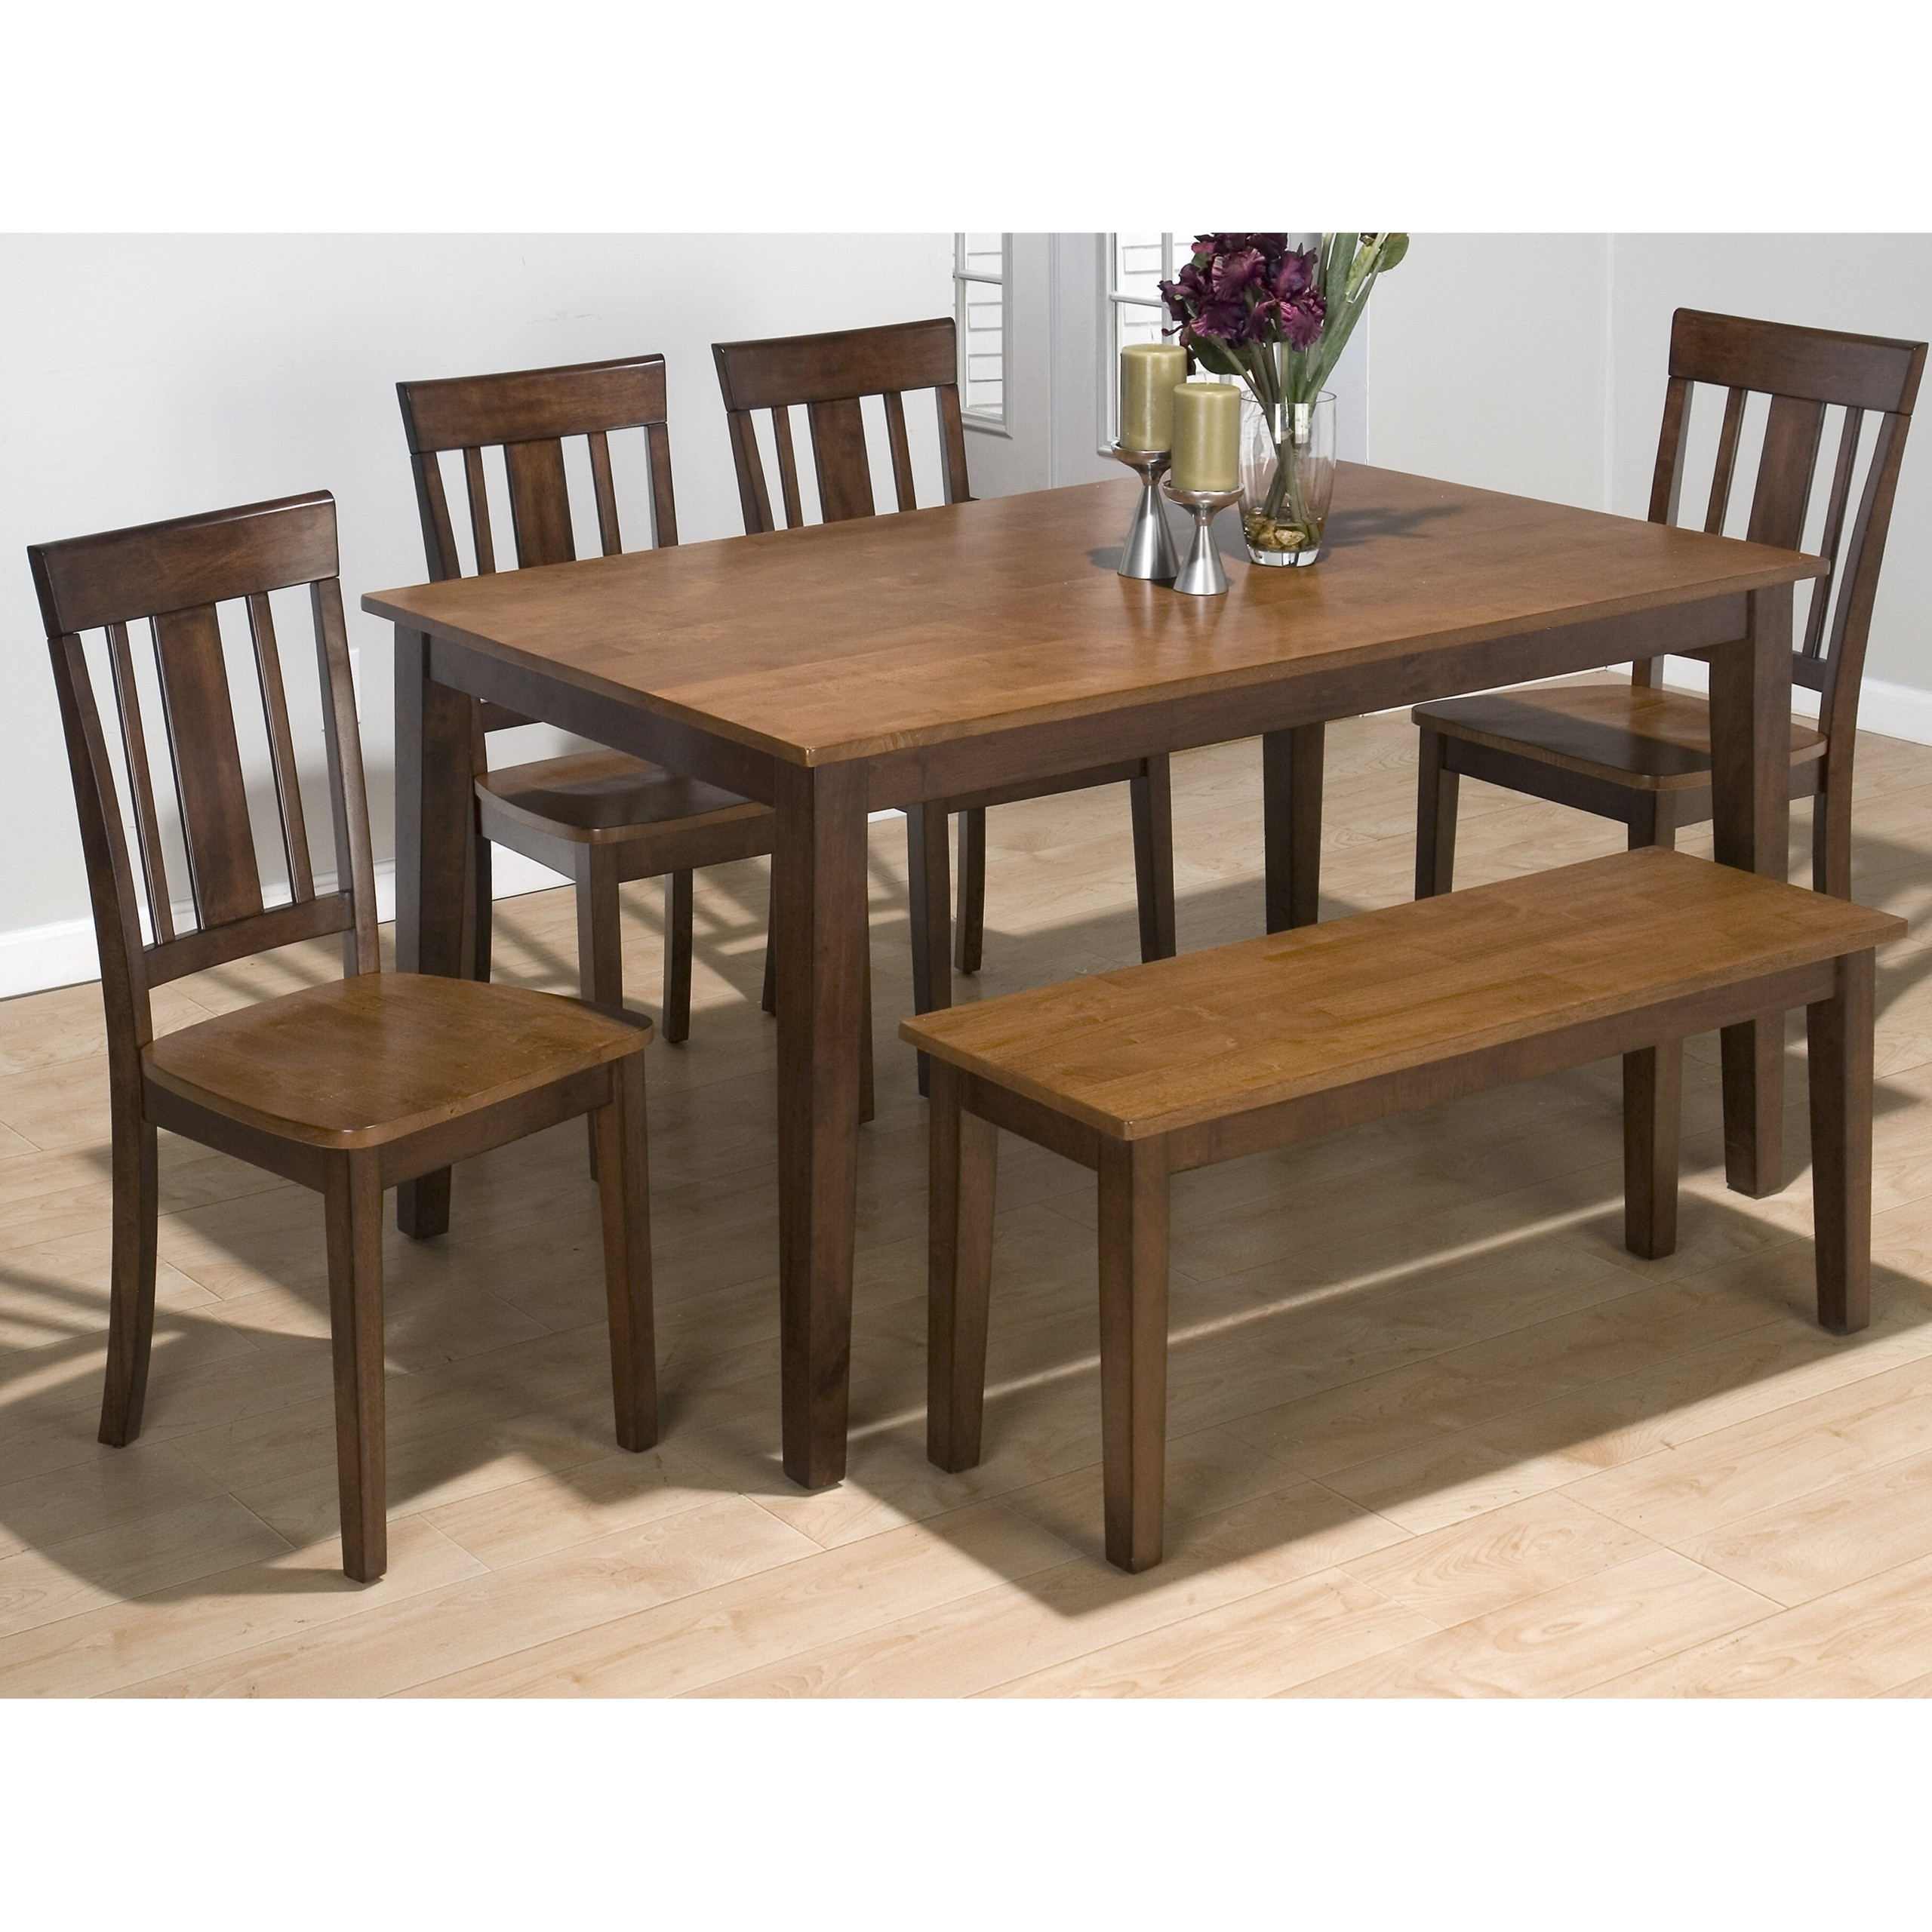 Charmant Rectangle Dining Table With Bench 1